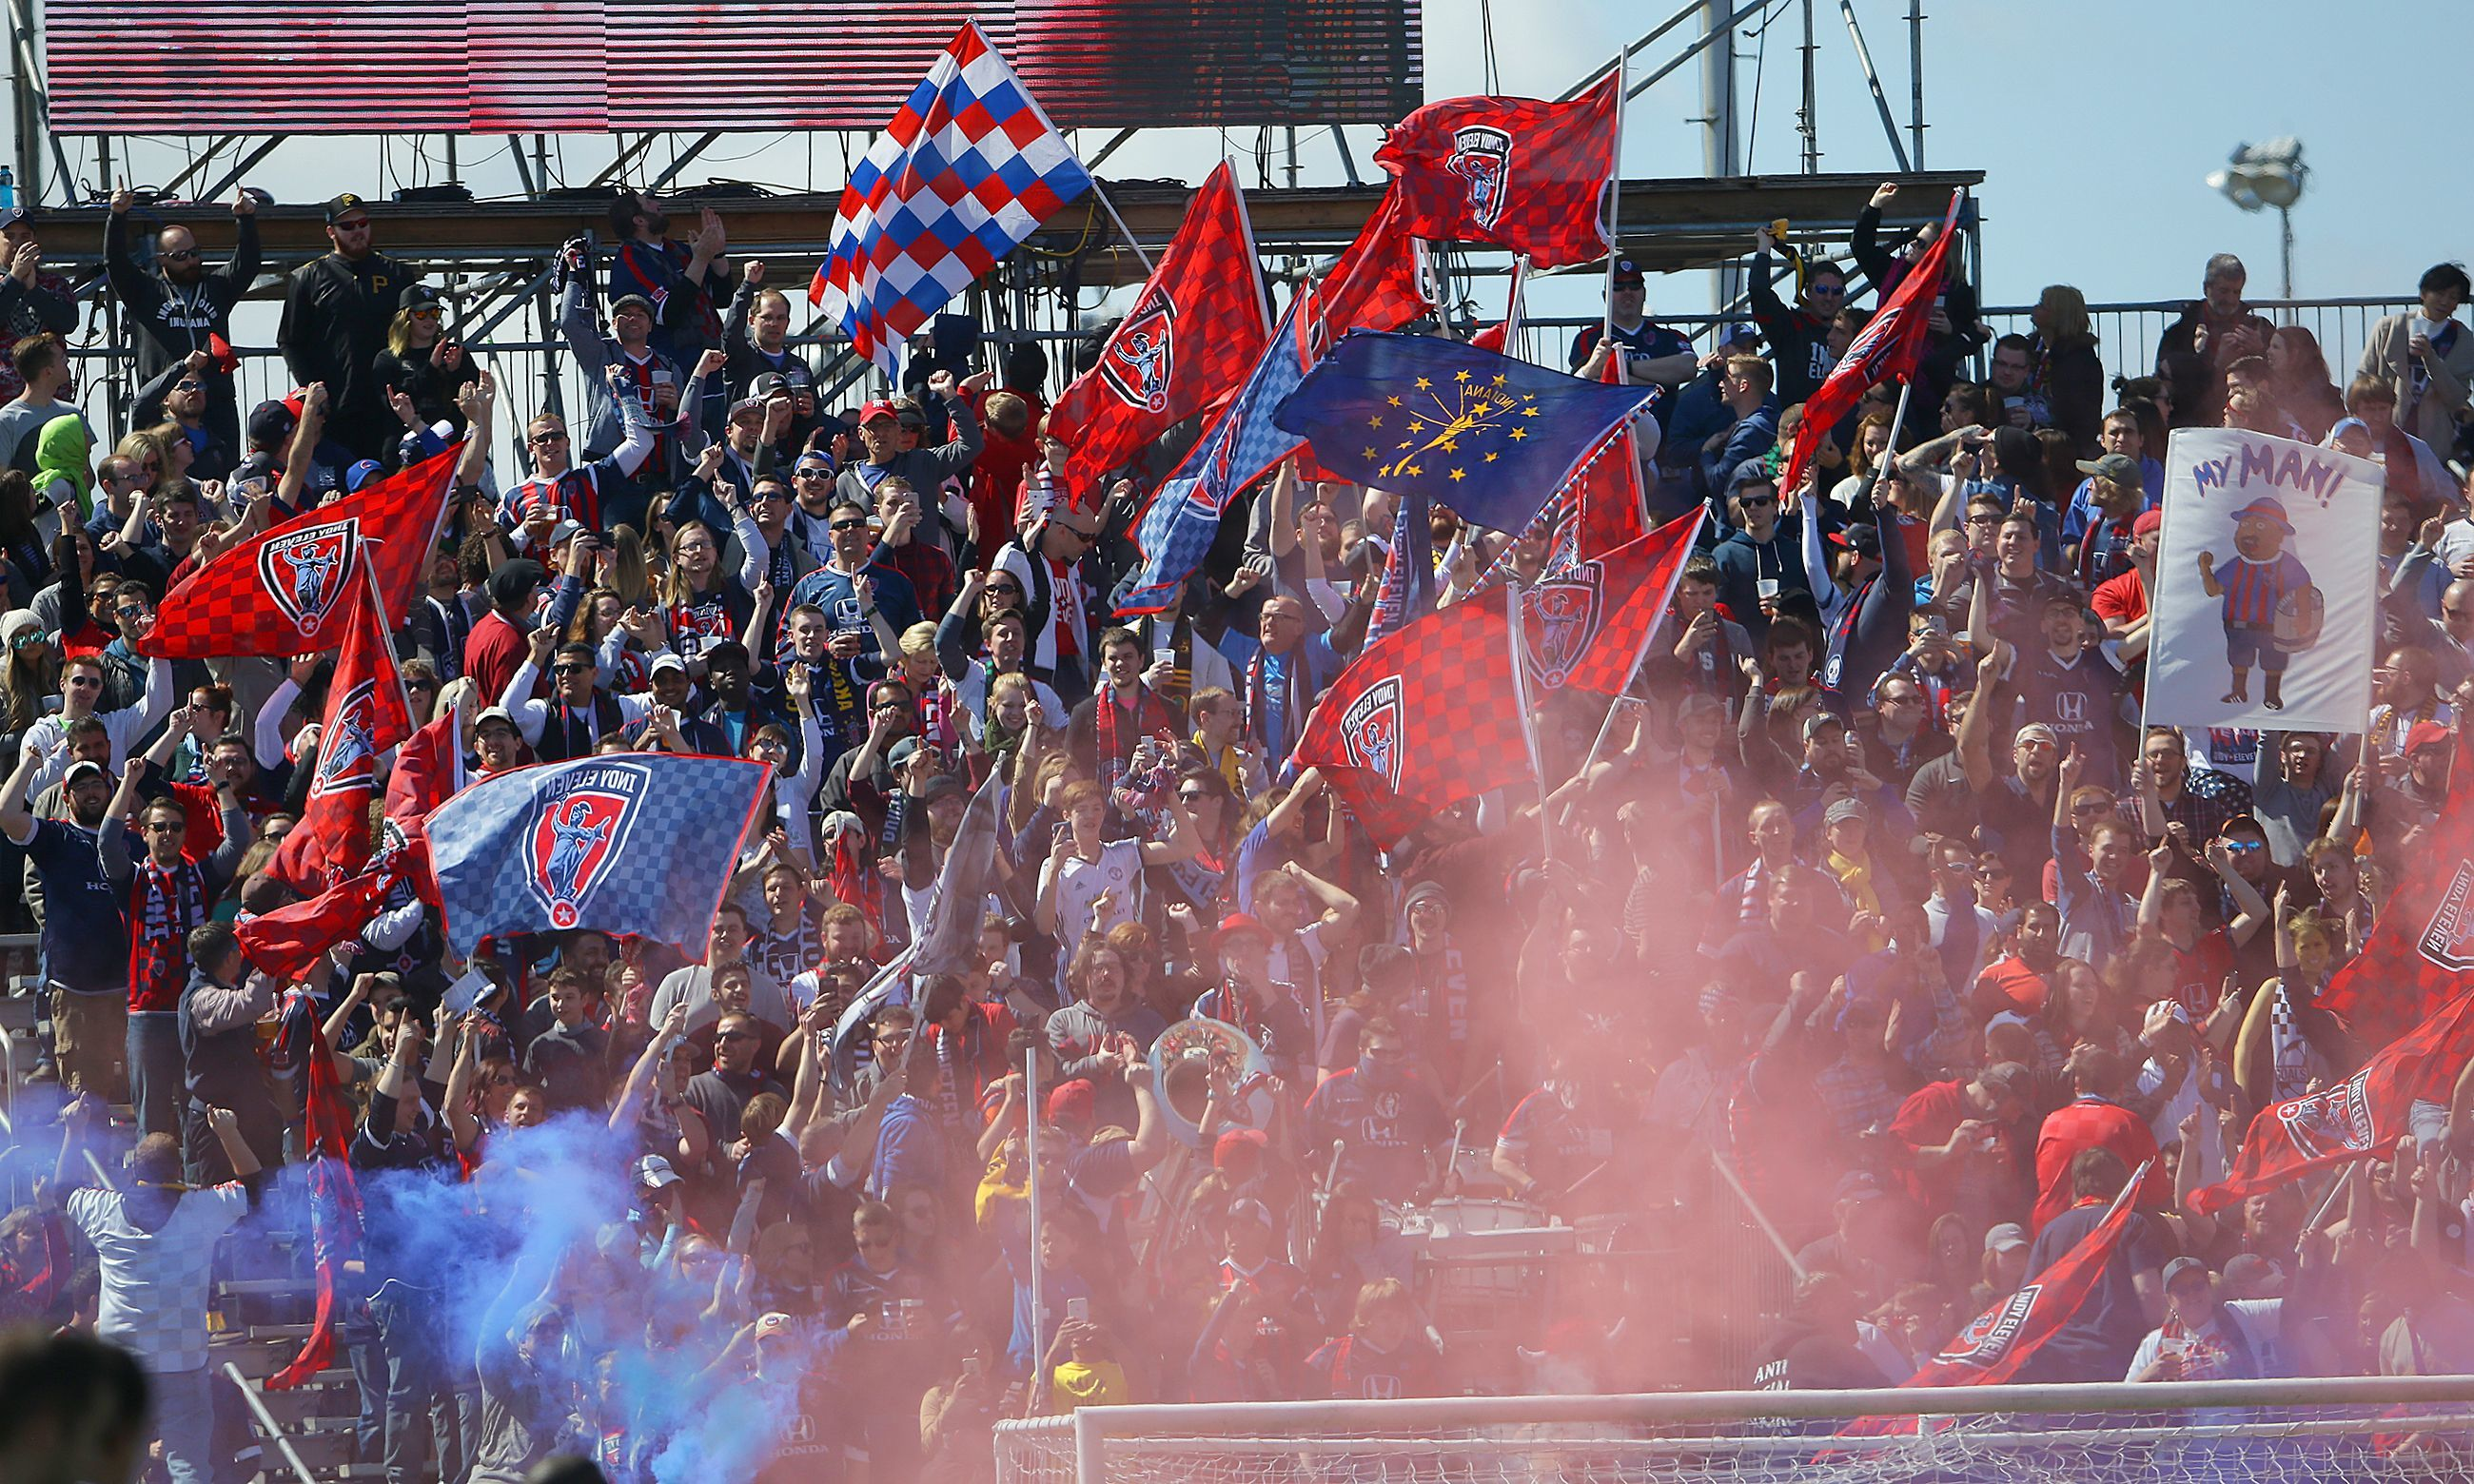 """Indy Eleven's fans have fond memories of """"The Mike."""" They'll return there Saturday for USL playoff action."""